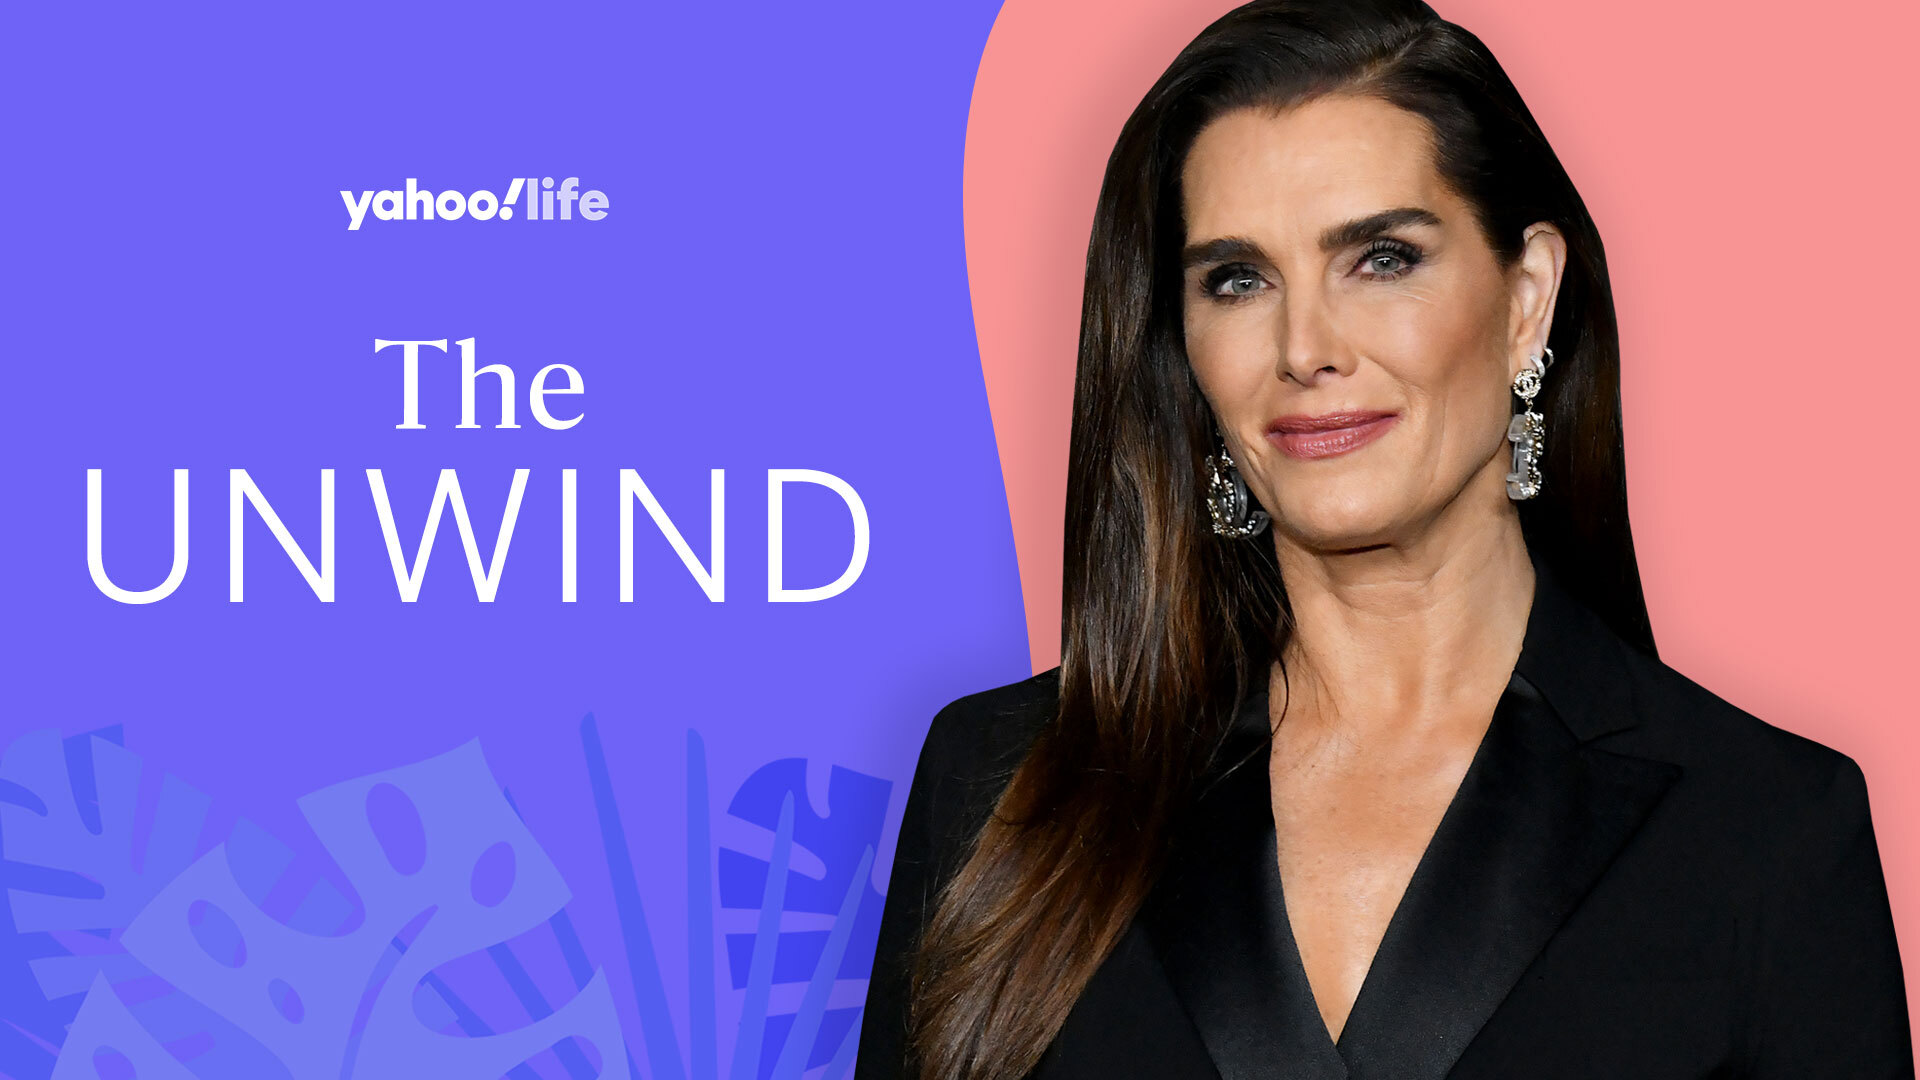 Brooke Shields on being praised for sharing swimsuit photos in her 50s: 'I find real value in it because I worked so hard'